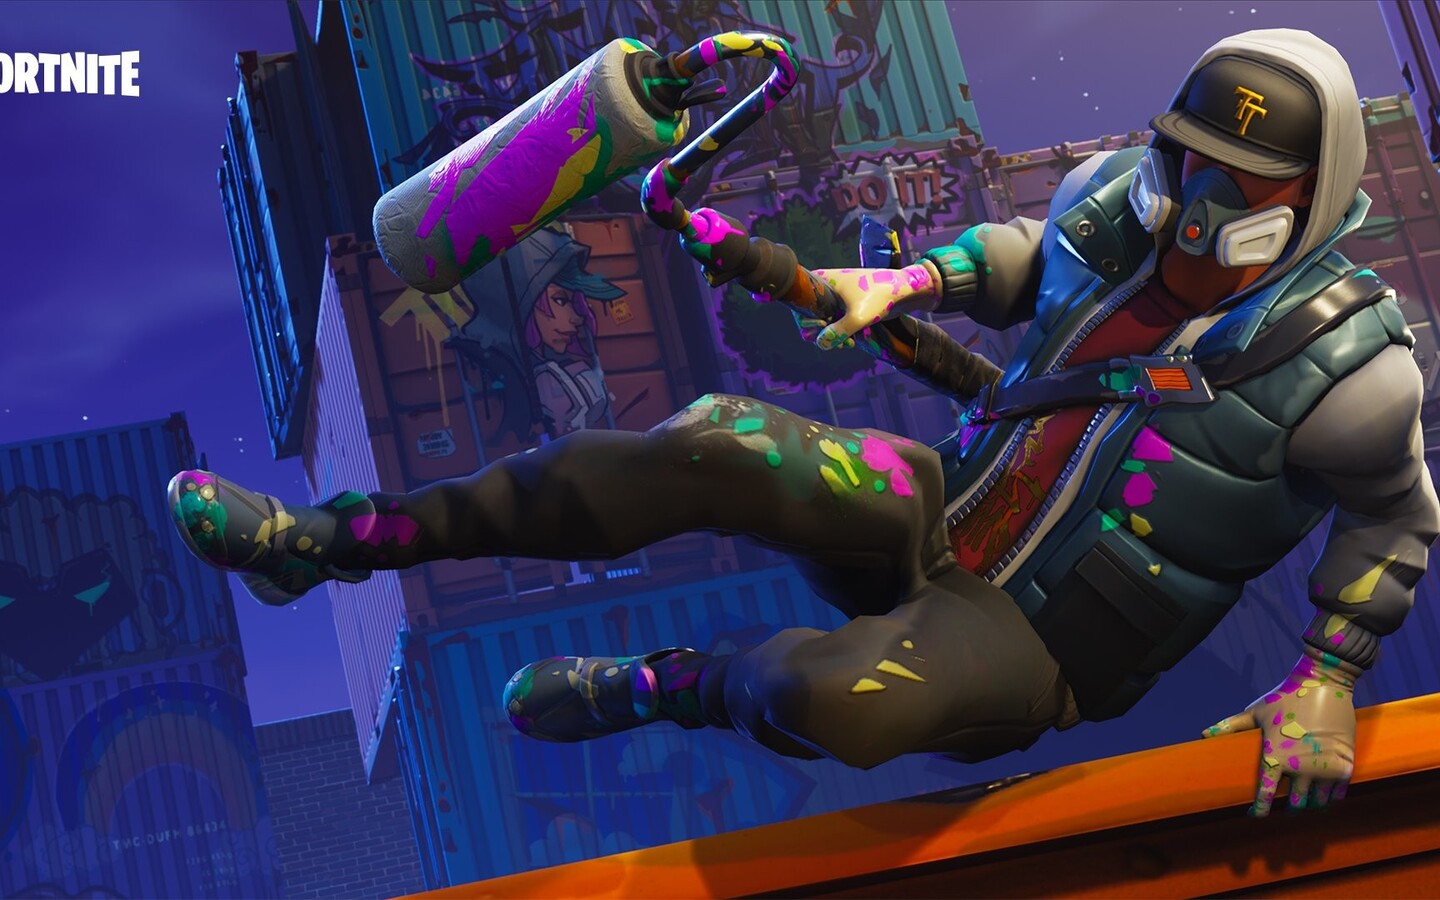 Fortnite Wallpaper 1440x900 Fortnite Battle Royale Abstrakt Skin